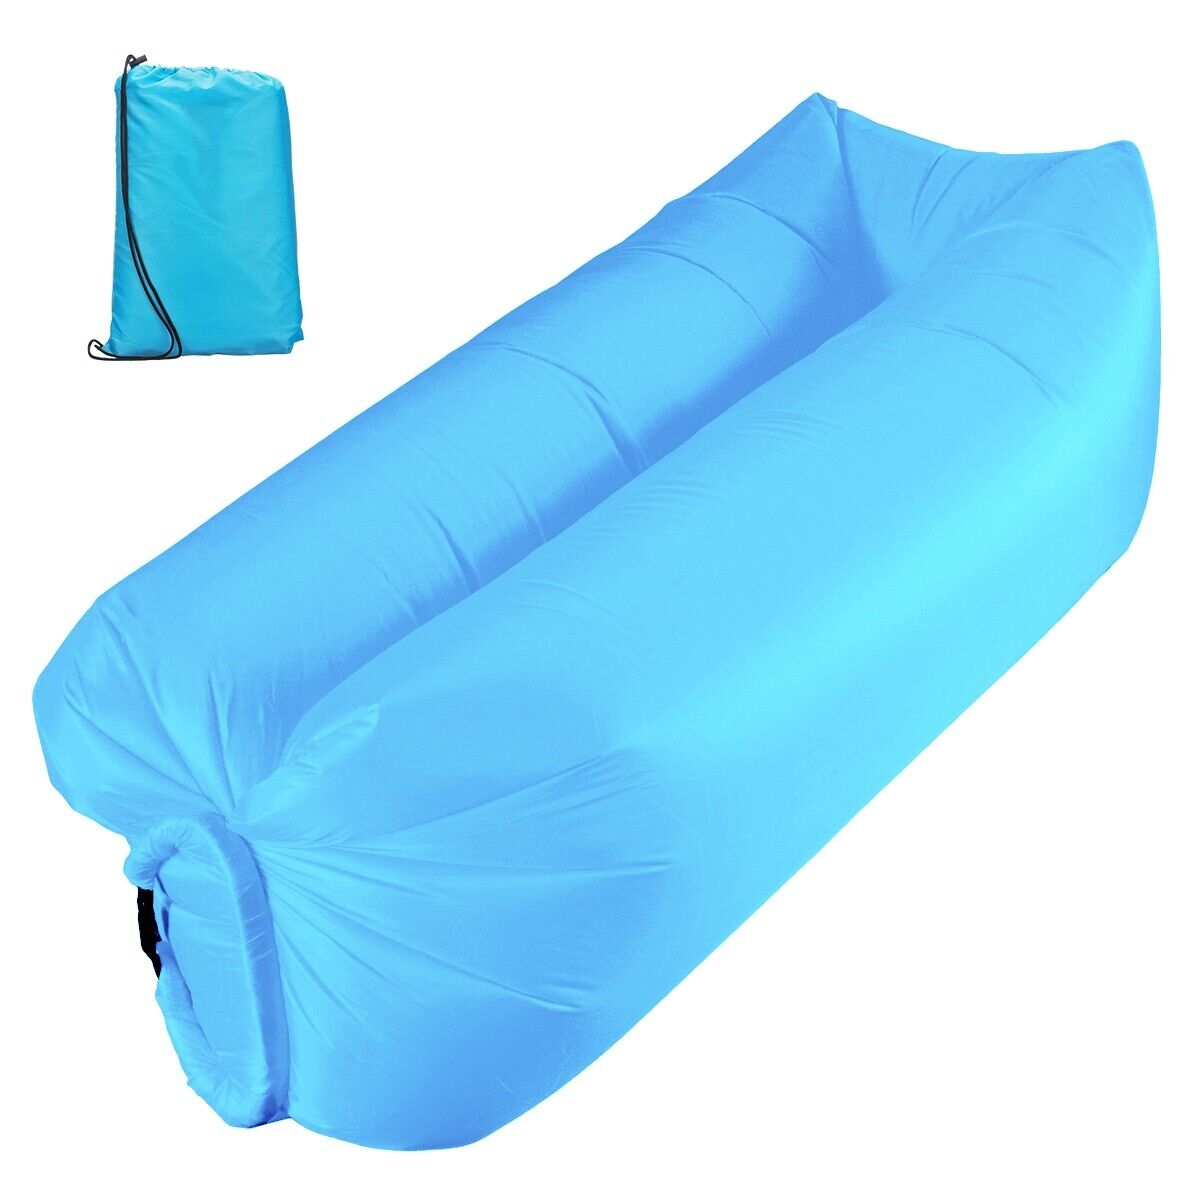 Inflatable Lounger Air Sofa Outdoor Portable Fast Inflatable